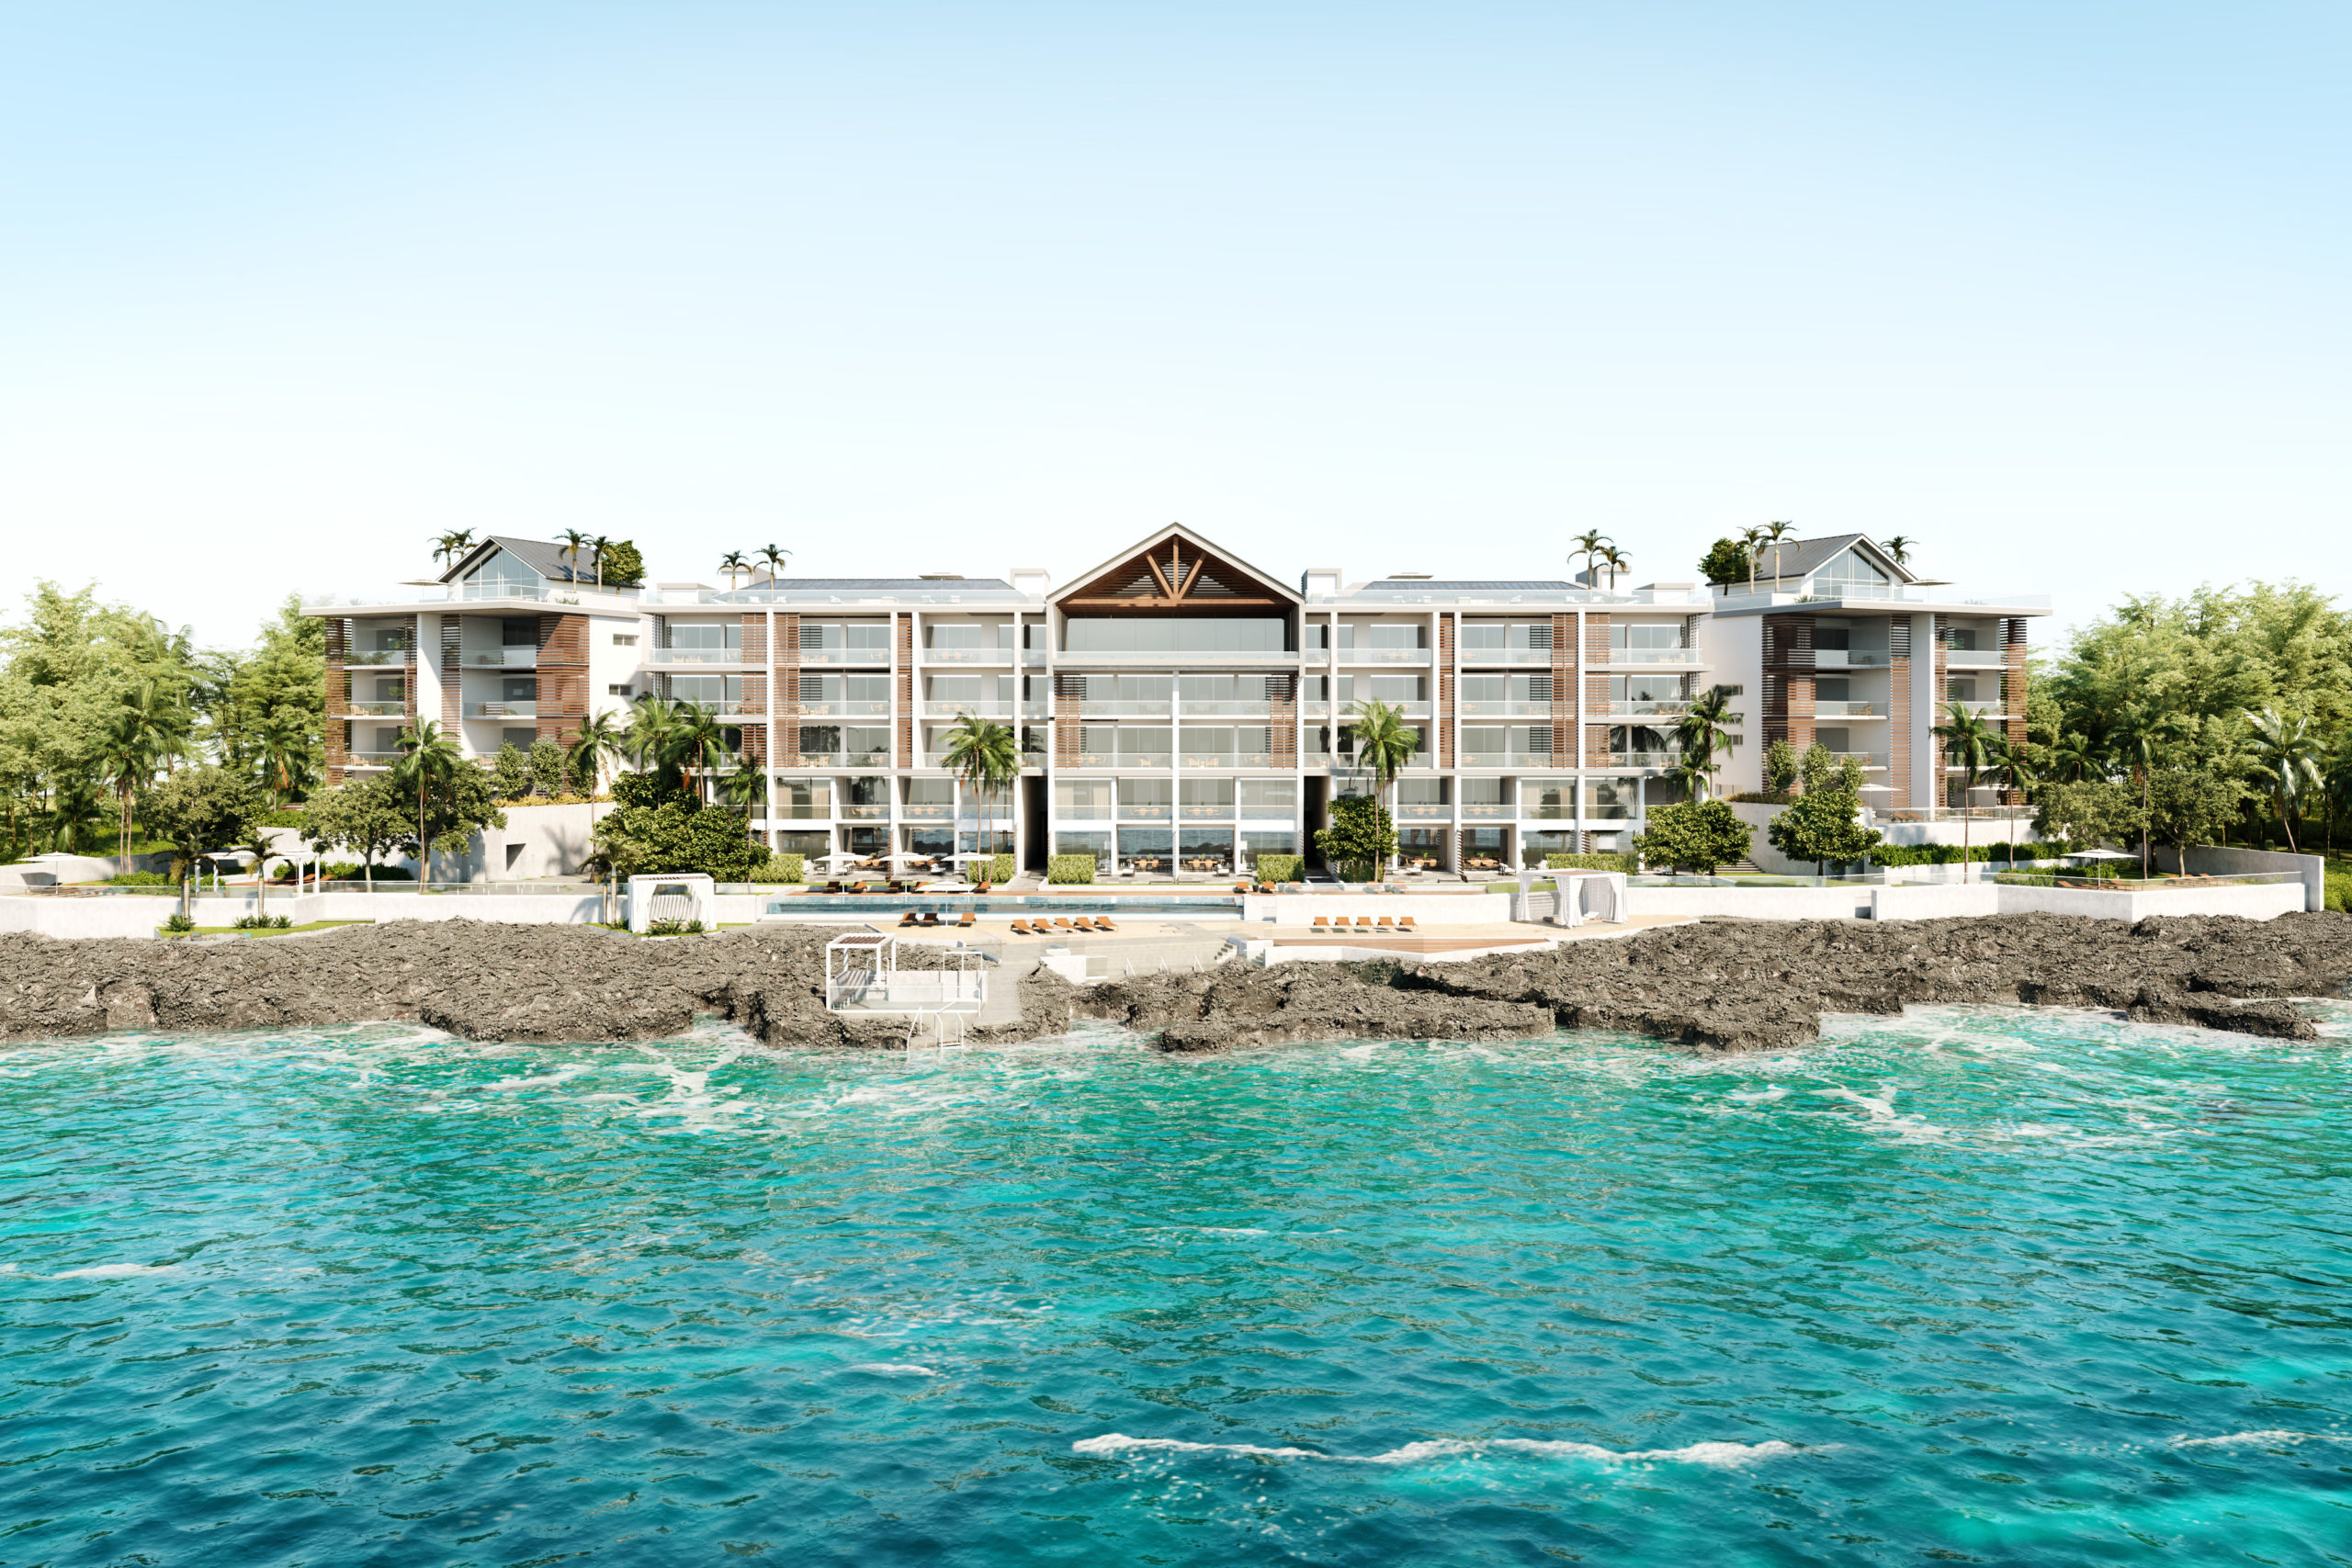 Dolphin Point Club, The newest development in The Cayman Islands